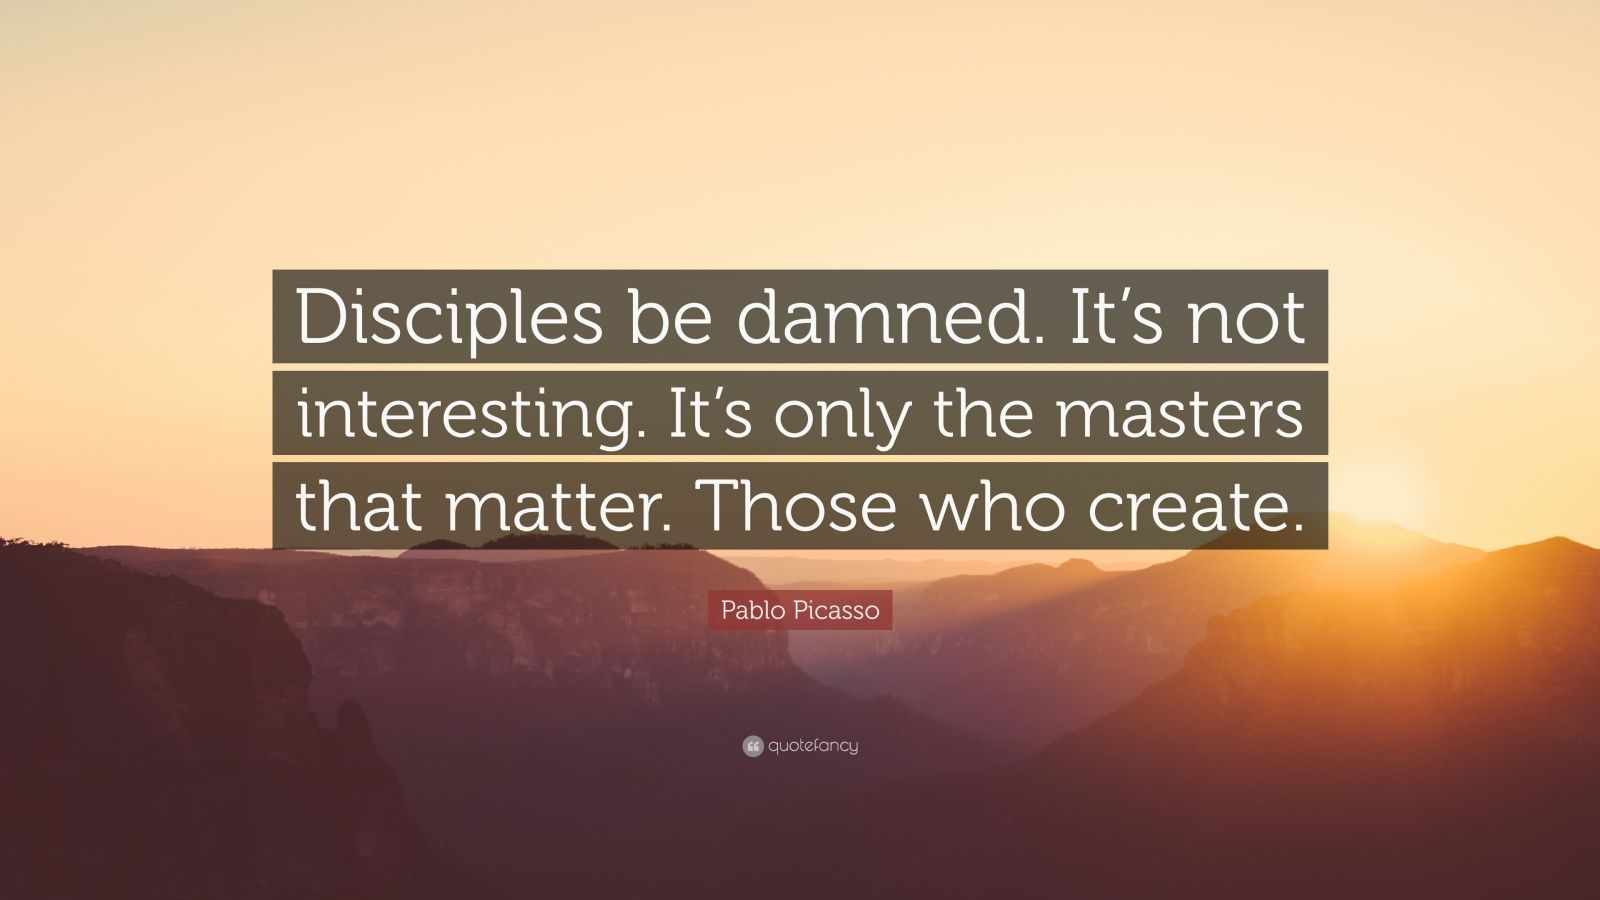 """Pablo Picasso Quote: """"Disciples be damned. It's not interesting. It's only the masters that matter. Those who create."""""""